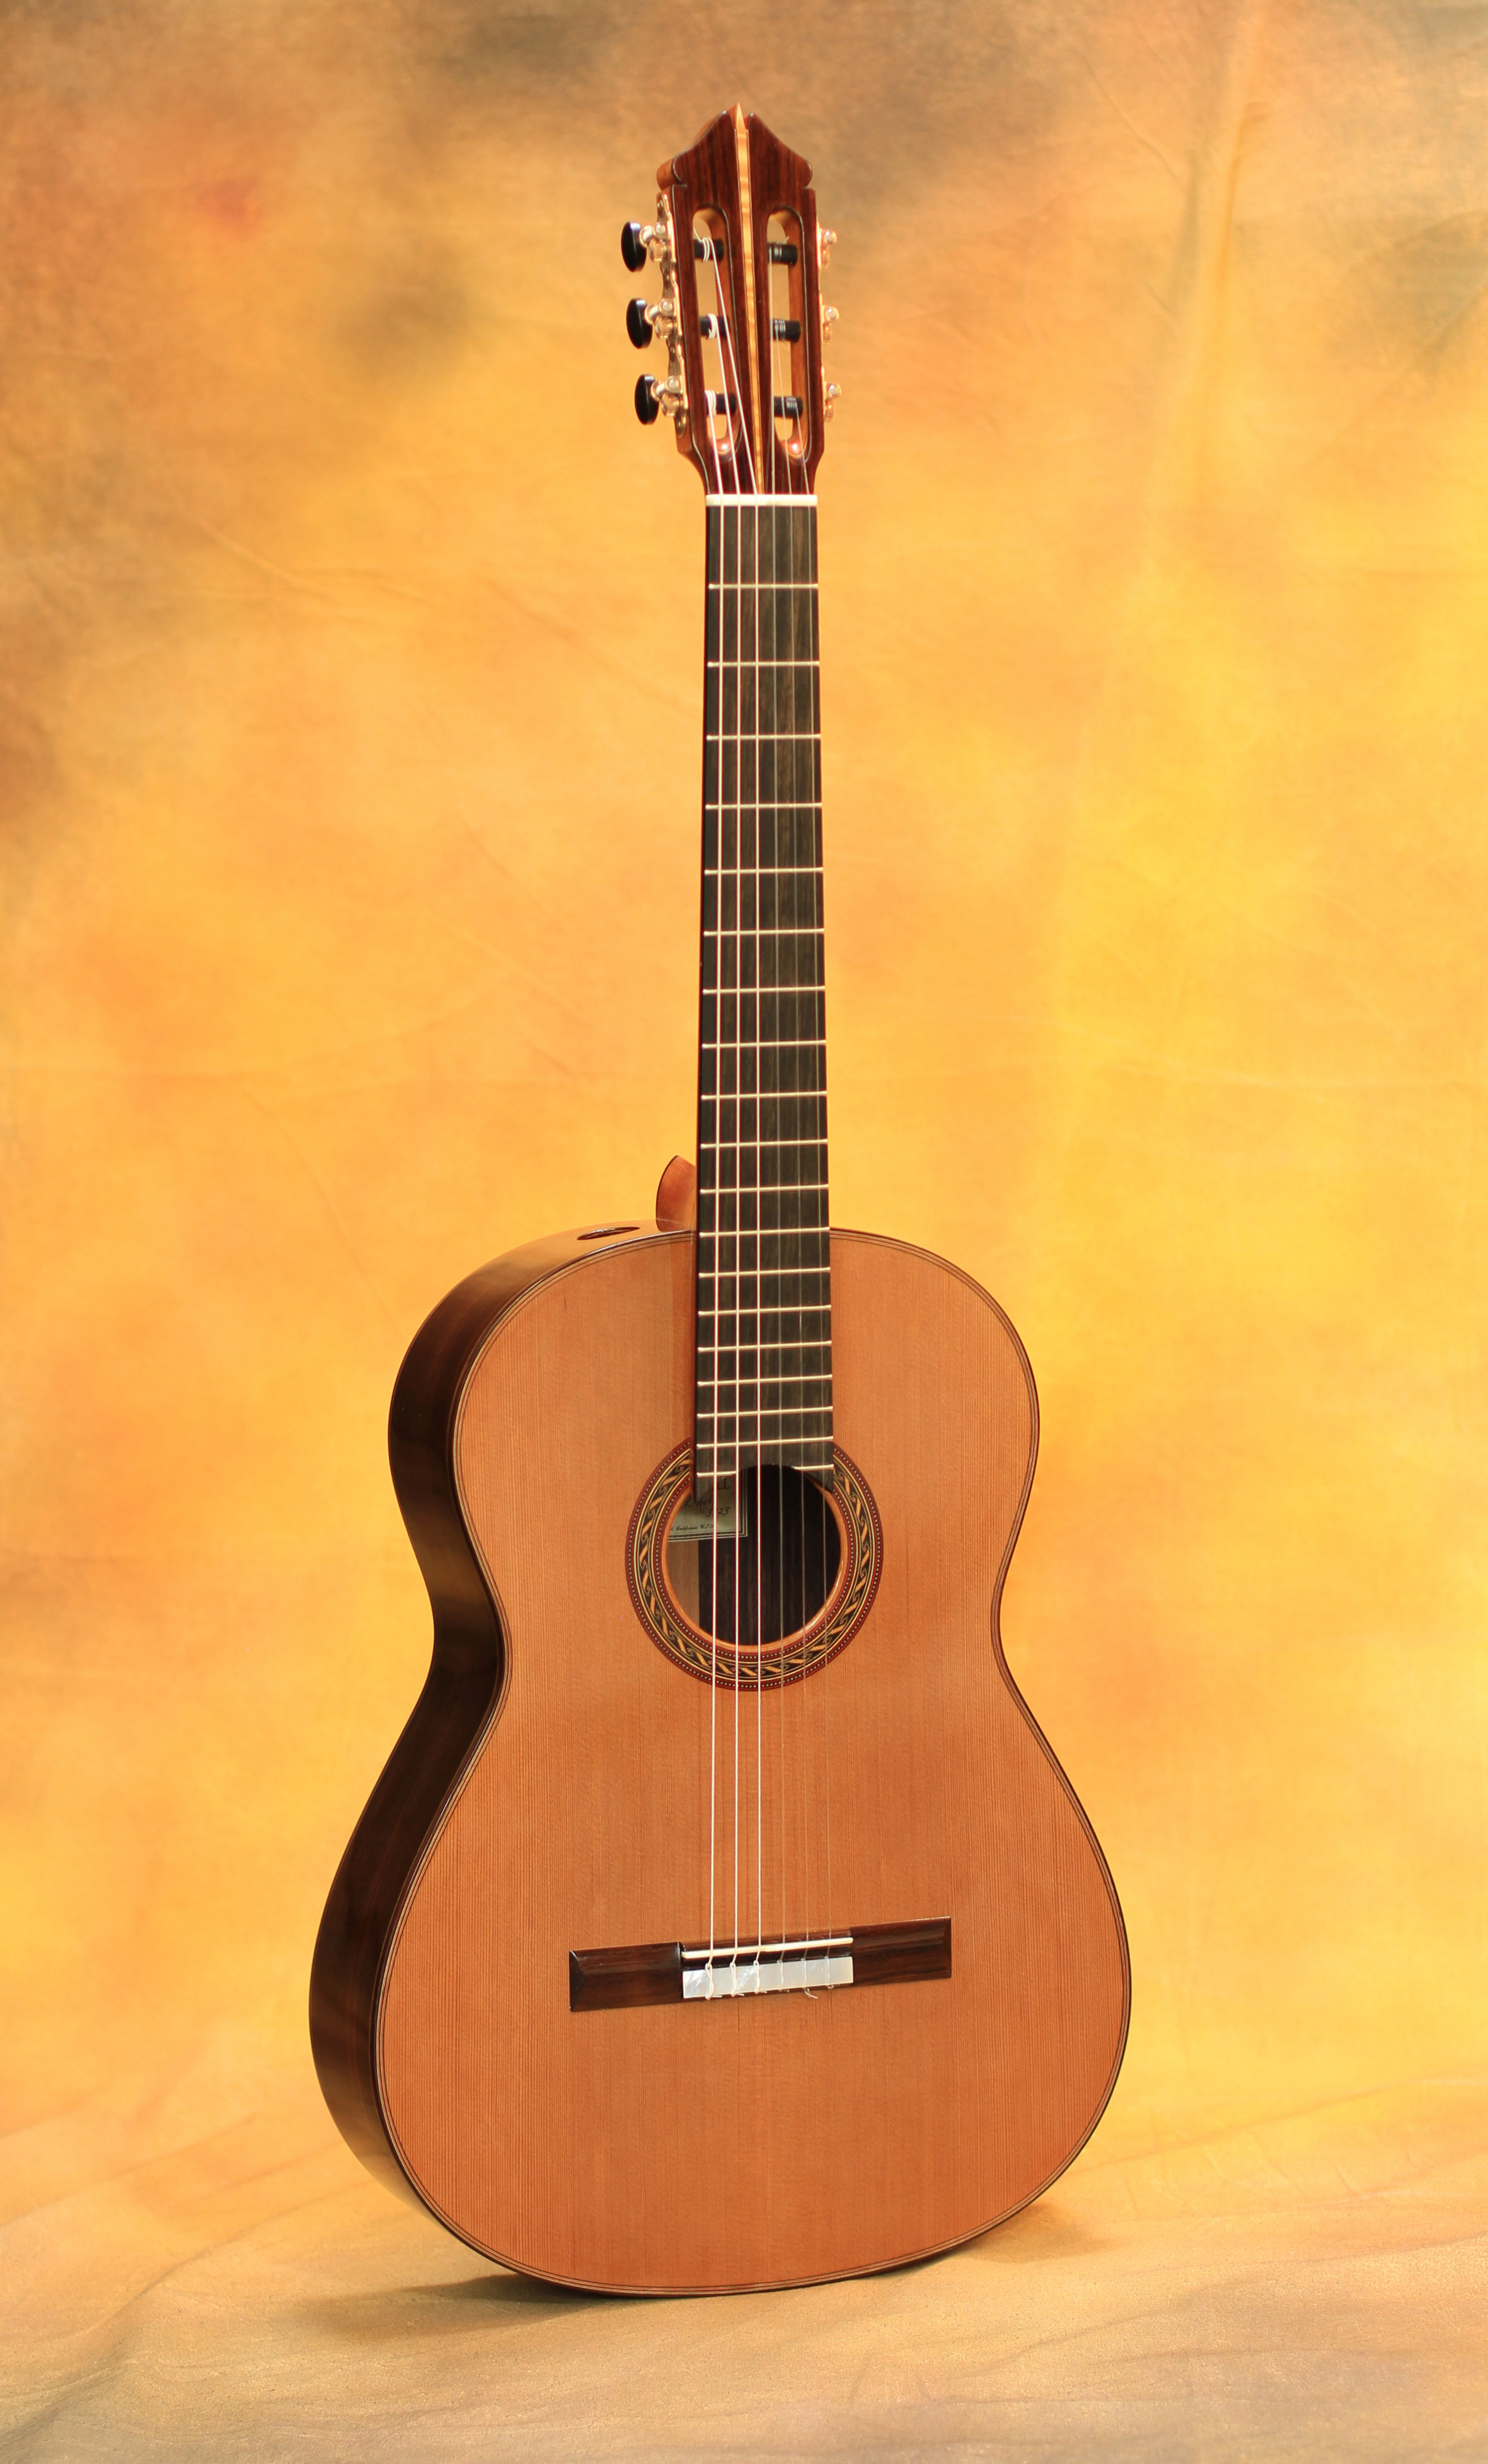 Kenny Hill Signature Classical Guitar 3323 Cedar